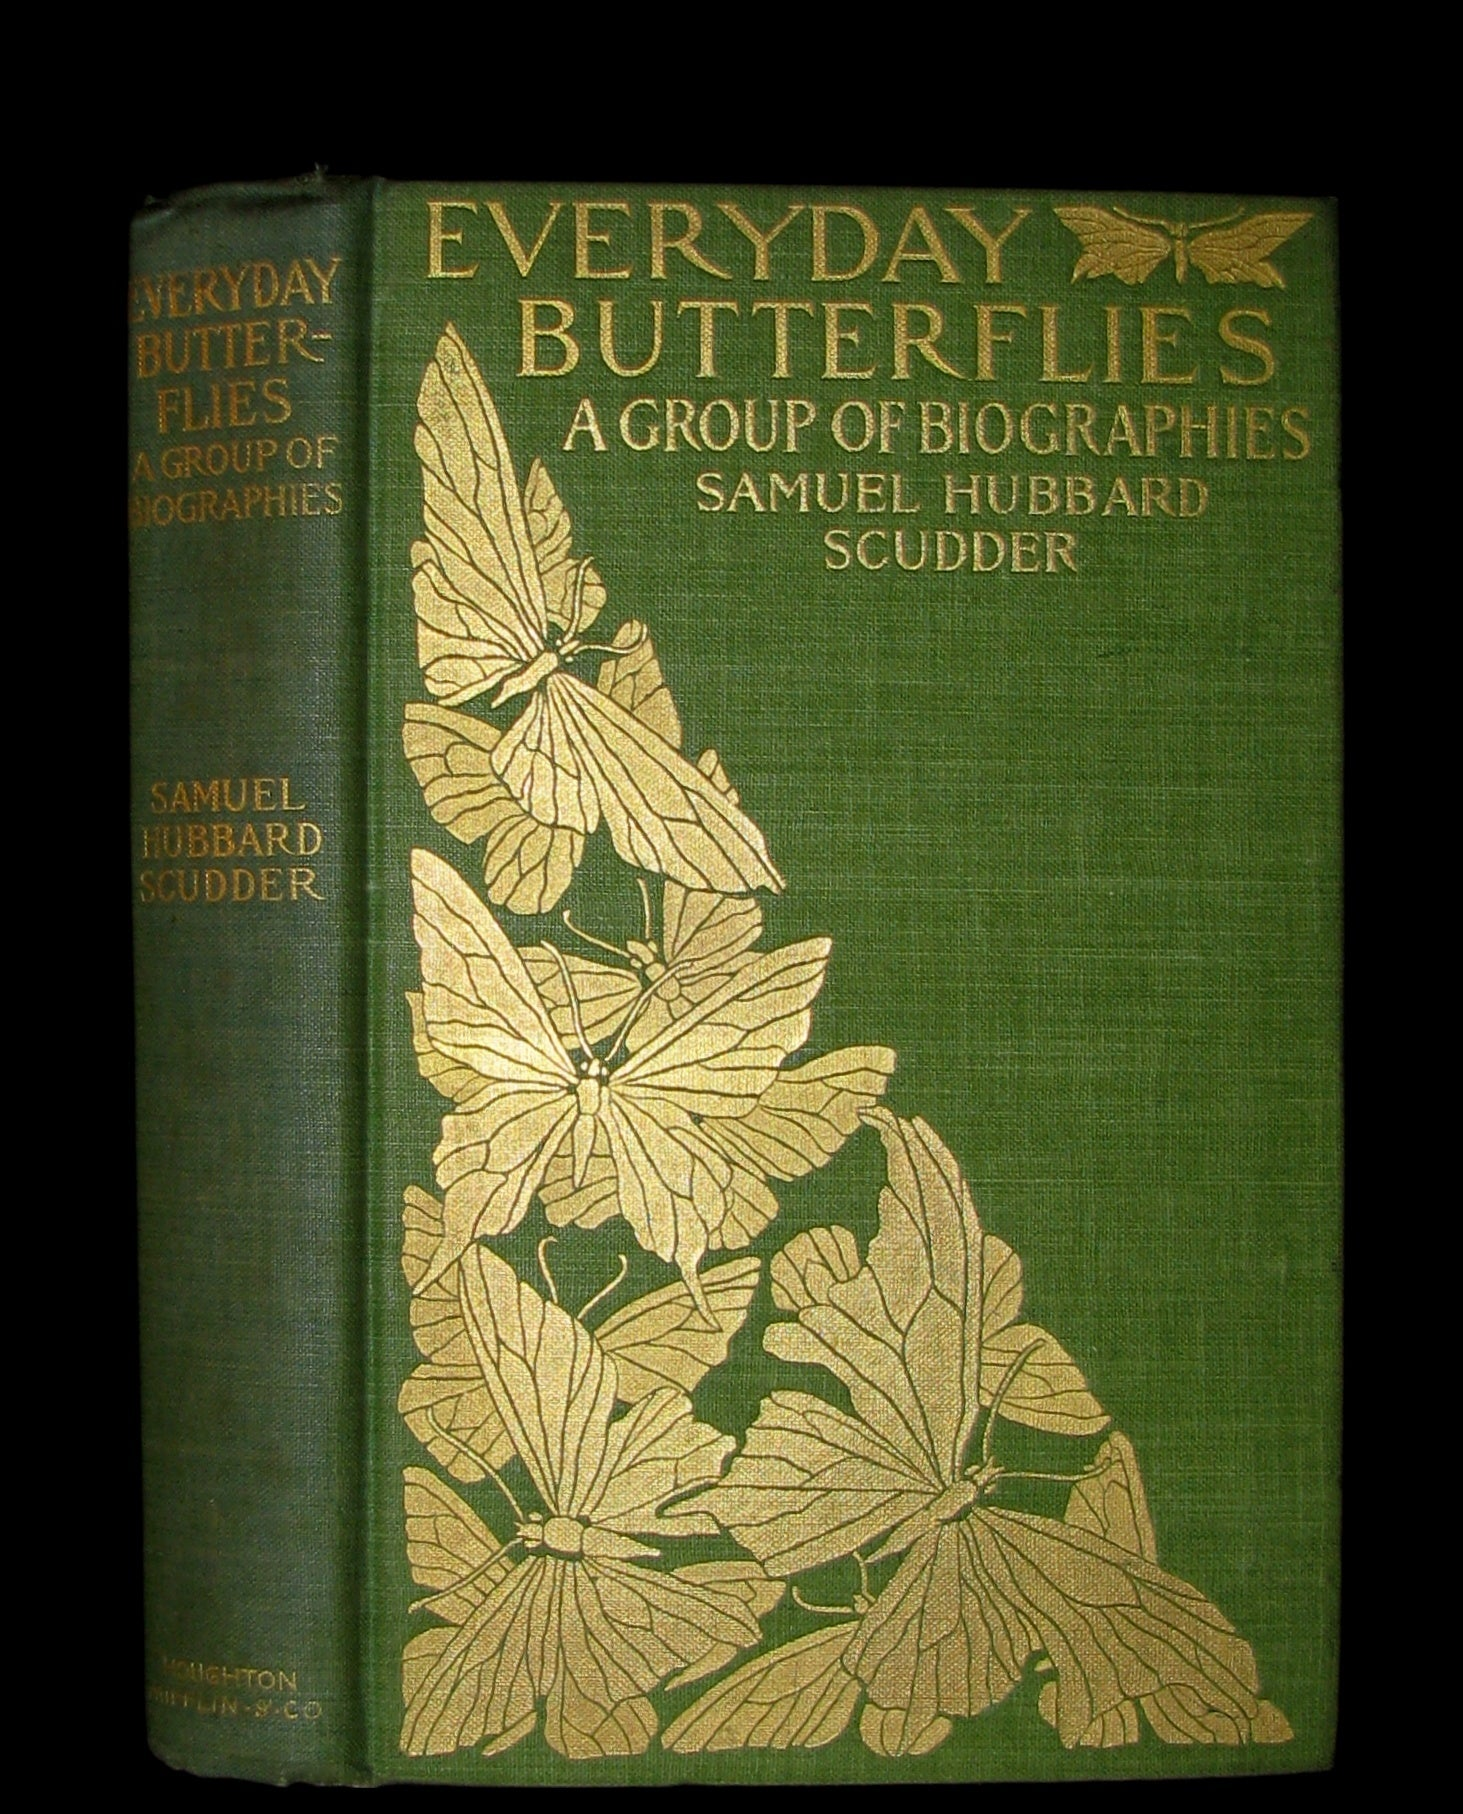 1899 Rare First Edition Book - Every-Day Butterflies A group of Biographies by Samuel Hubbard Scudder